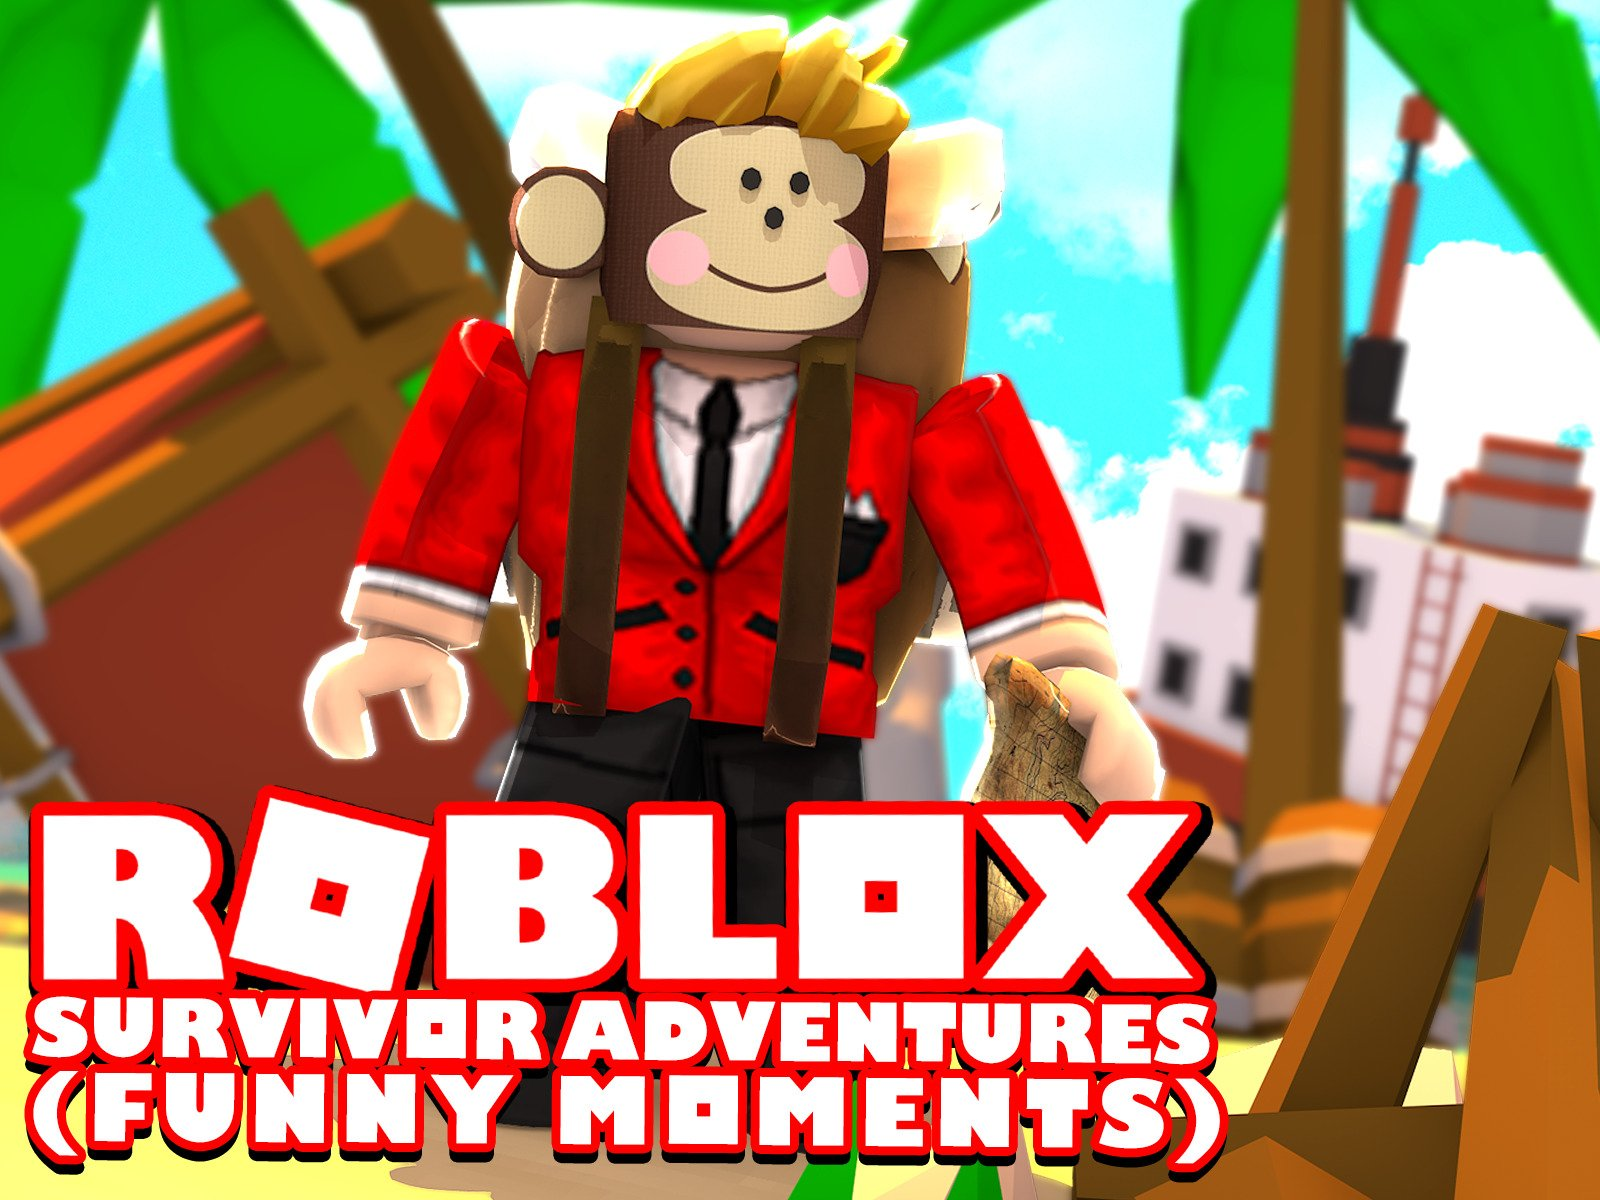 Roblox Survivor Adventures (Funny Moments) on Amazon Prime Video UK